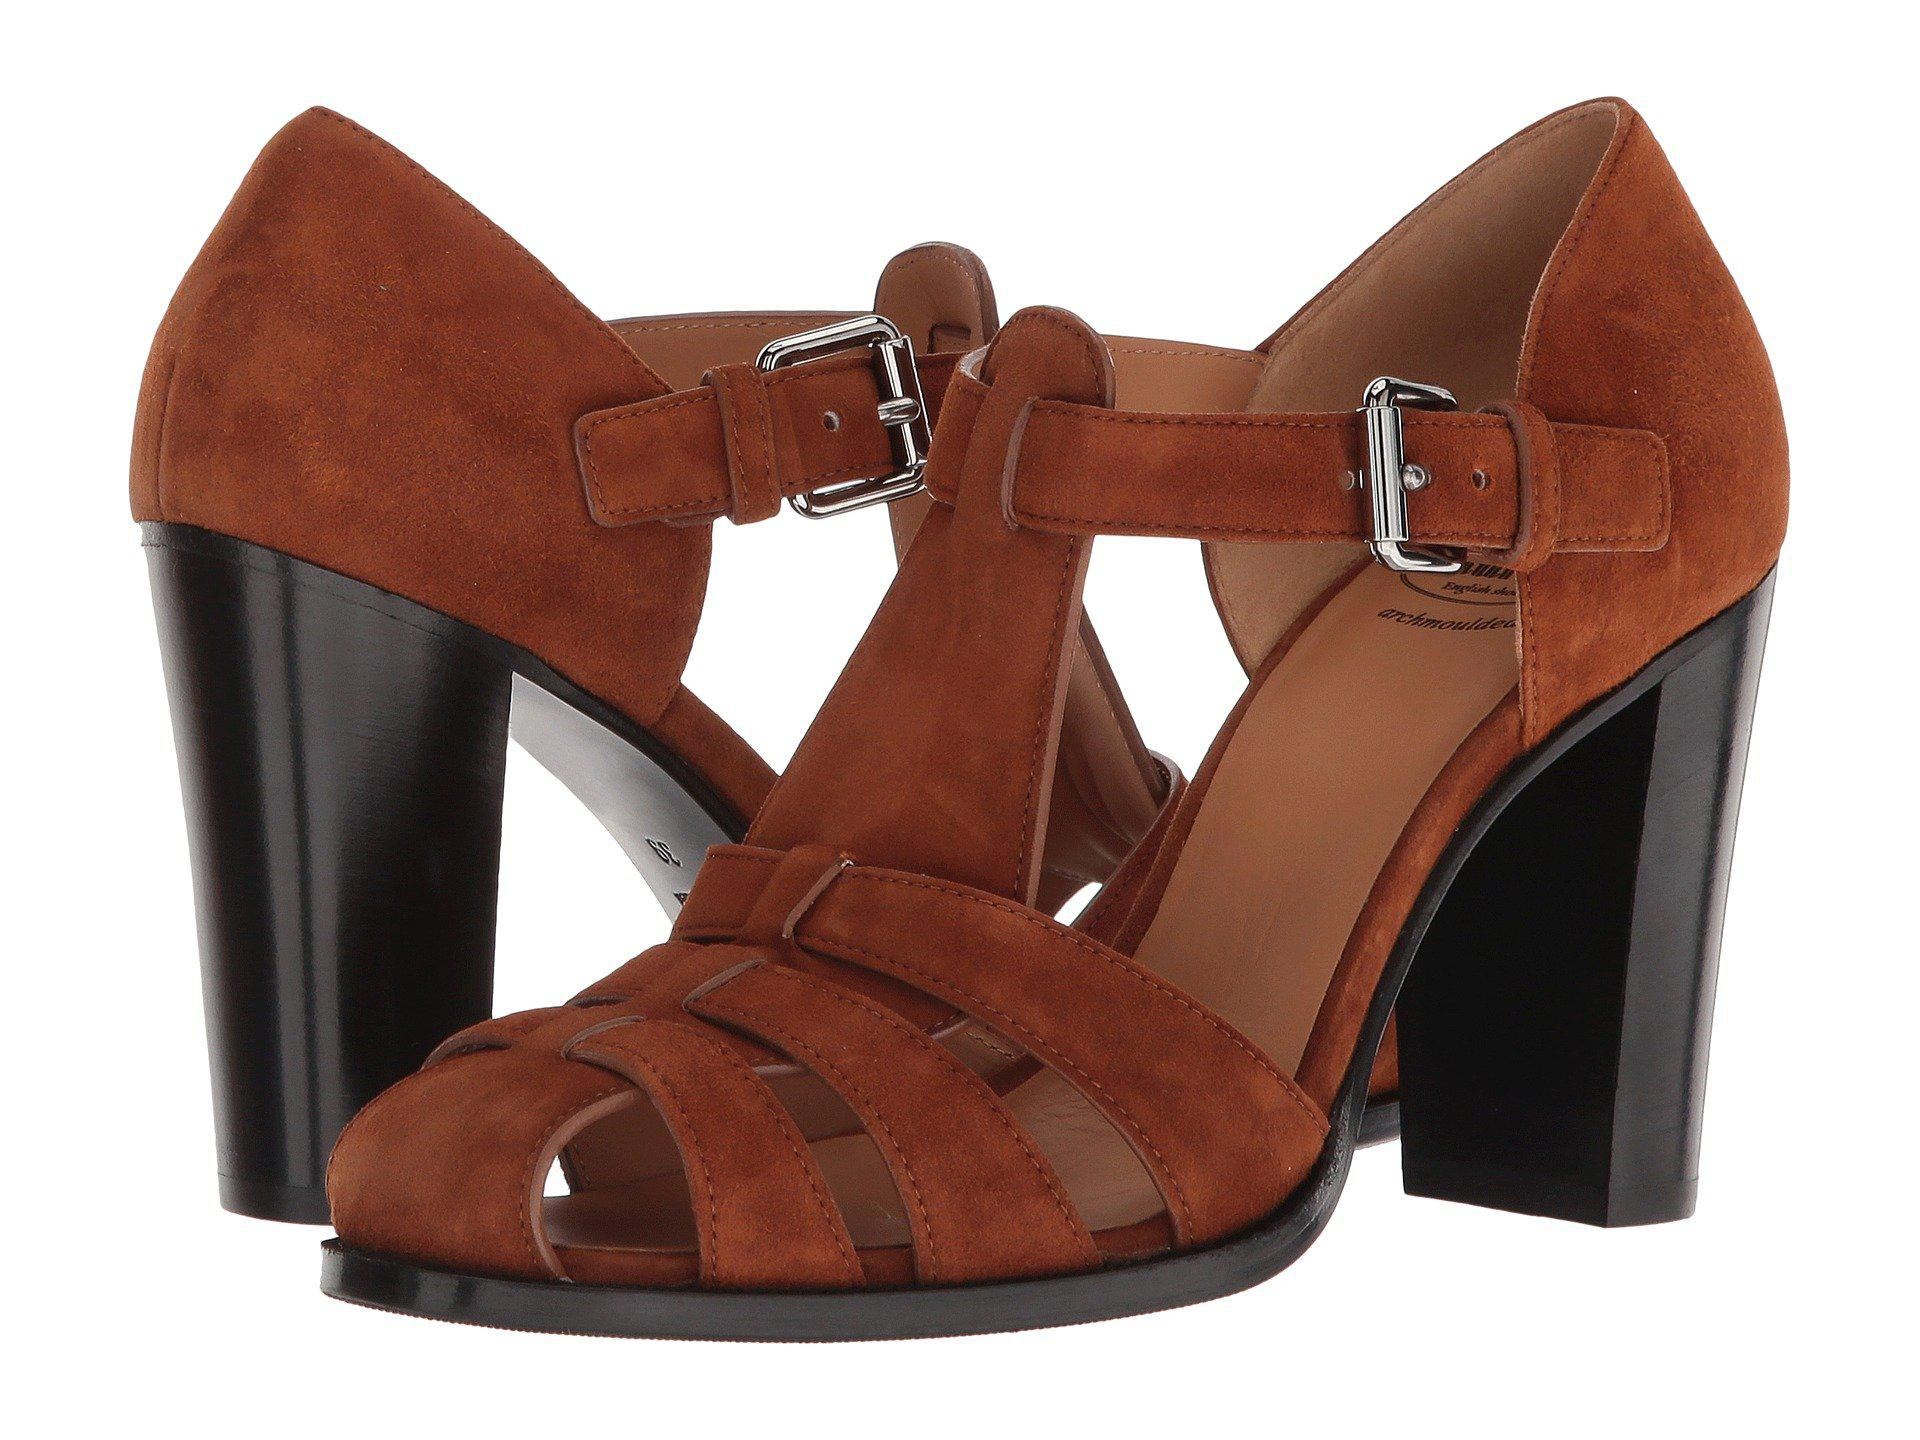 9ad5f688d331 Lyst - Church s Kelsey Suede Sandal in Brown - Save 69.83050847457628%